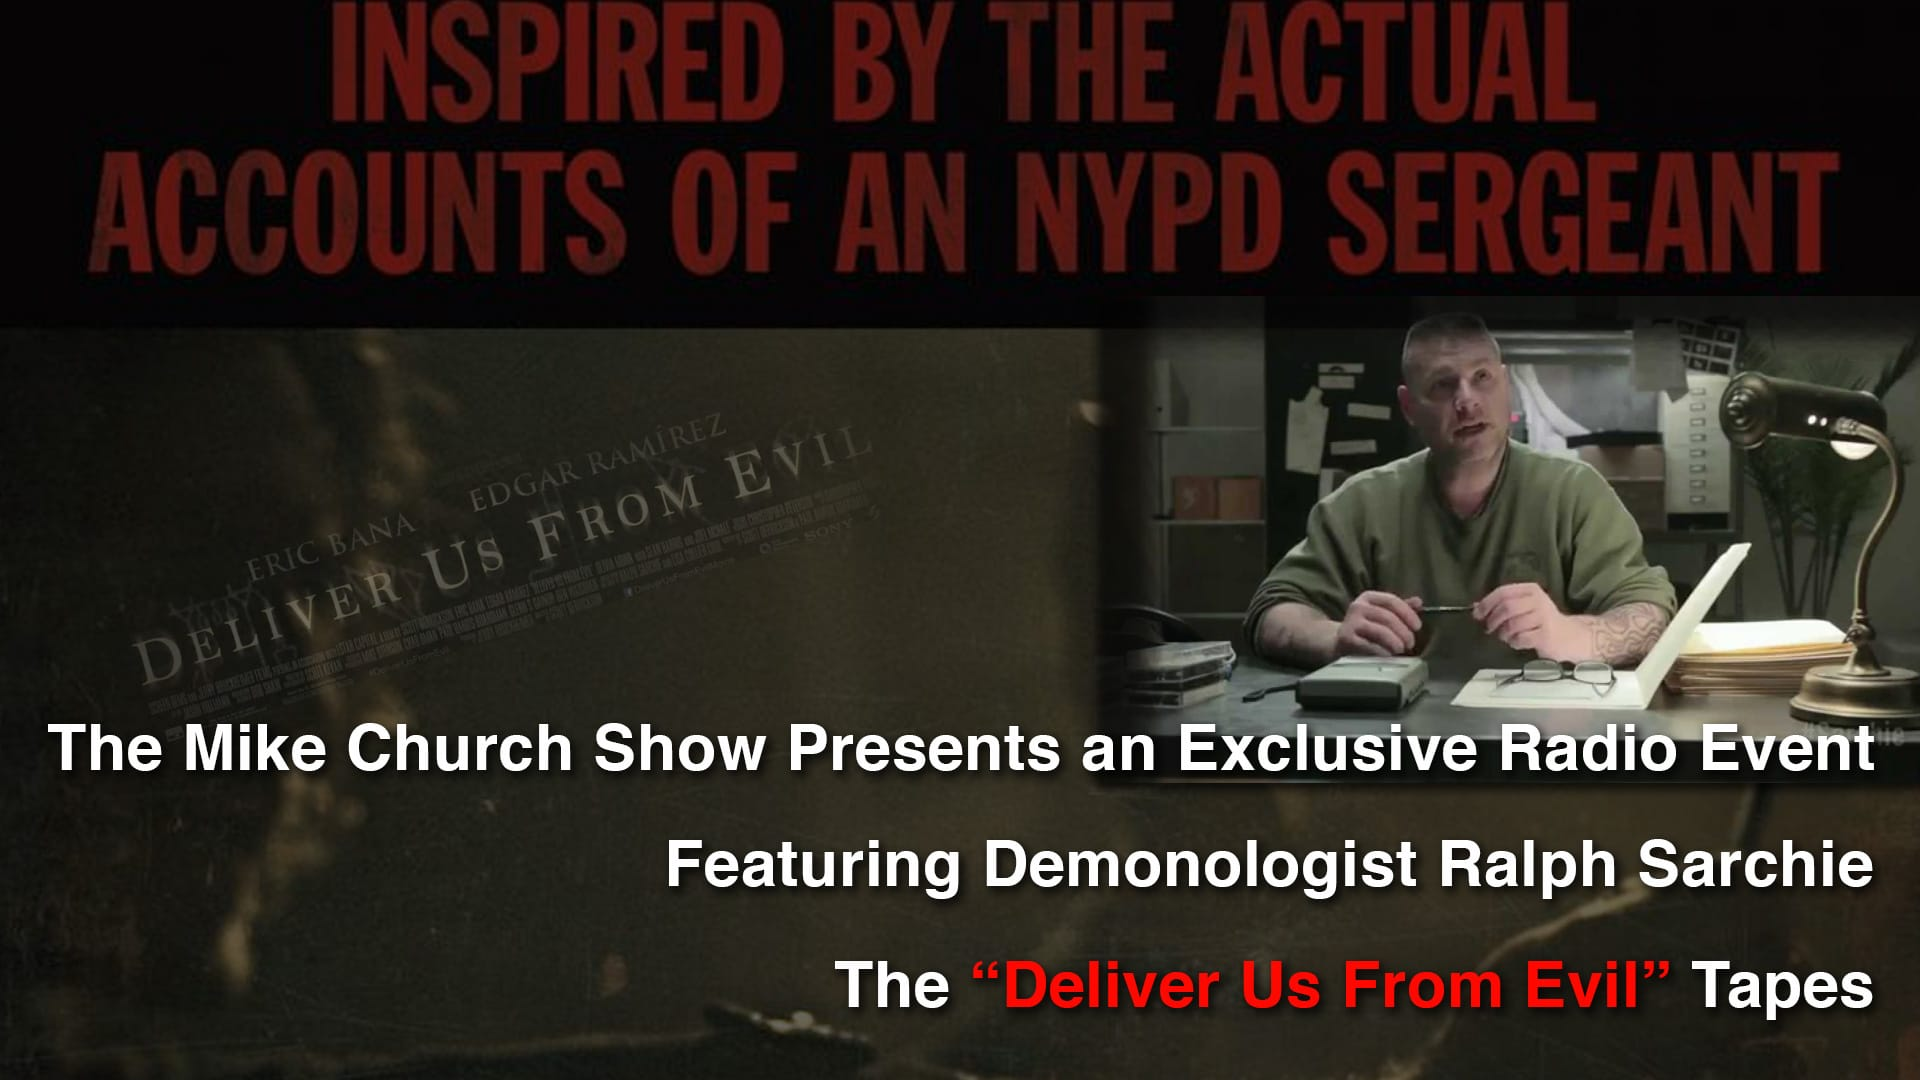 The Deliver Us From Evil Tapes Part V Demons & Communism - The Mike Church Show